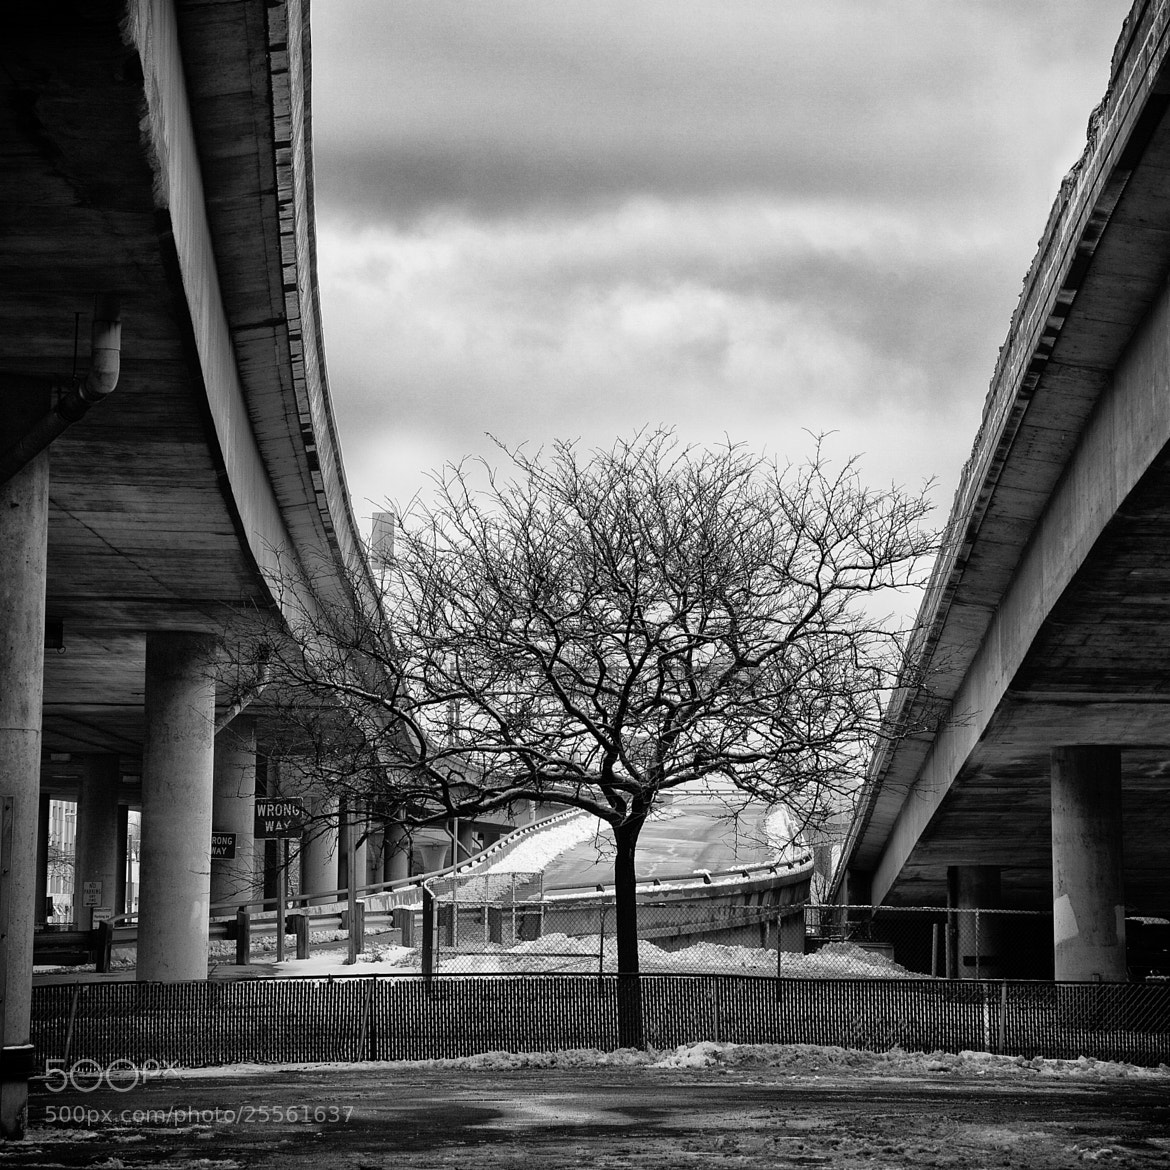 Photograph between the highways by Crazy Ivory on 500px